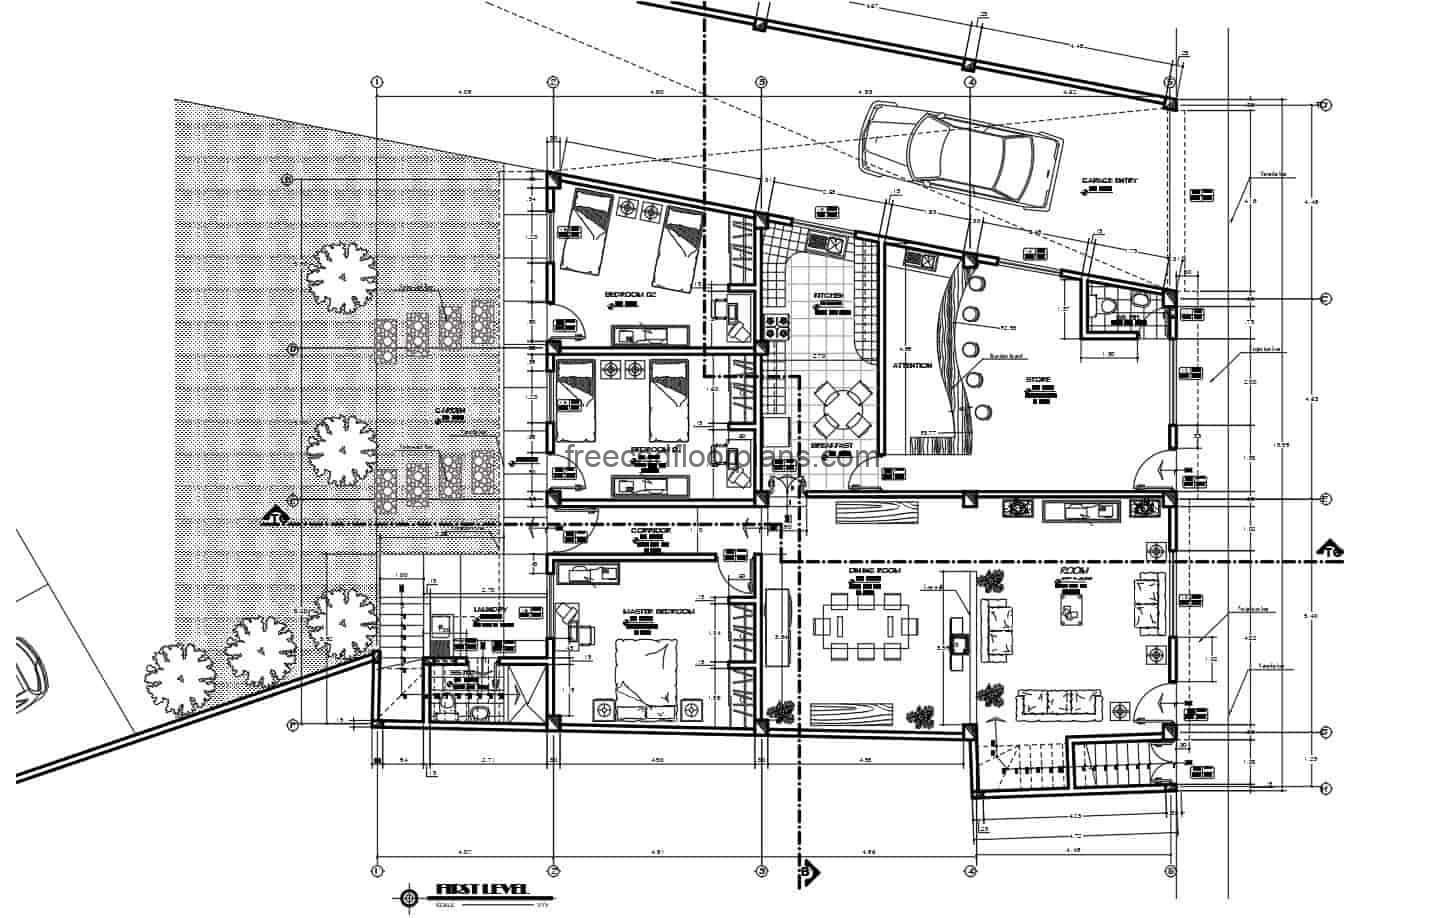 Architectural design of 2D DWG plans Mixed house and commerce with dimensioned plan, elevations and sections. The place has a two-level residence with seven rooms in total, living room, kitchen, dining room, and attached a commercial space in front. Blueprints 2D for free download in Autocad DWG format